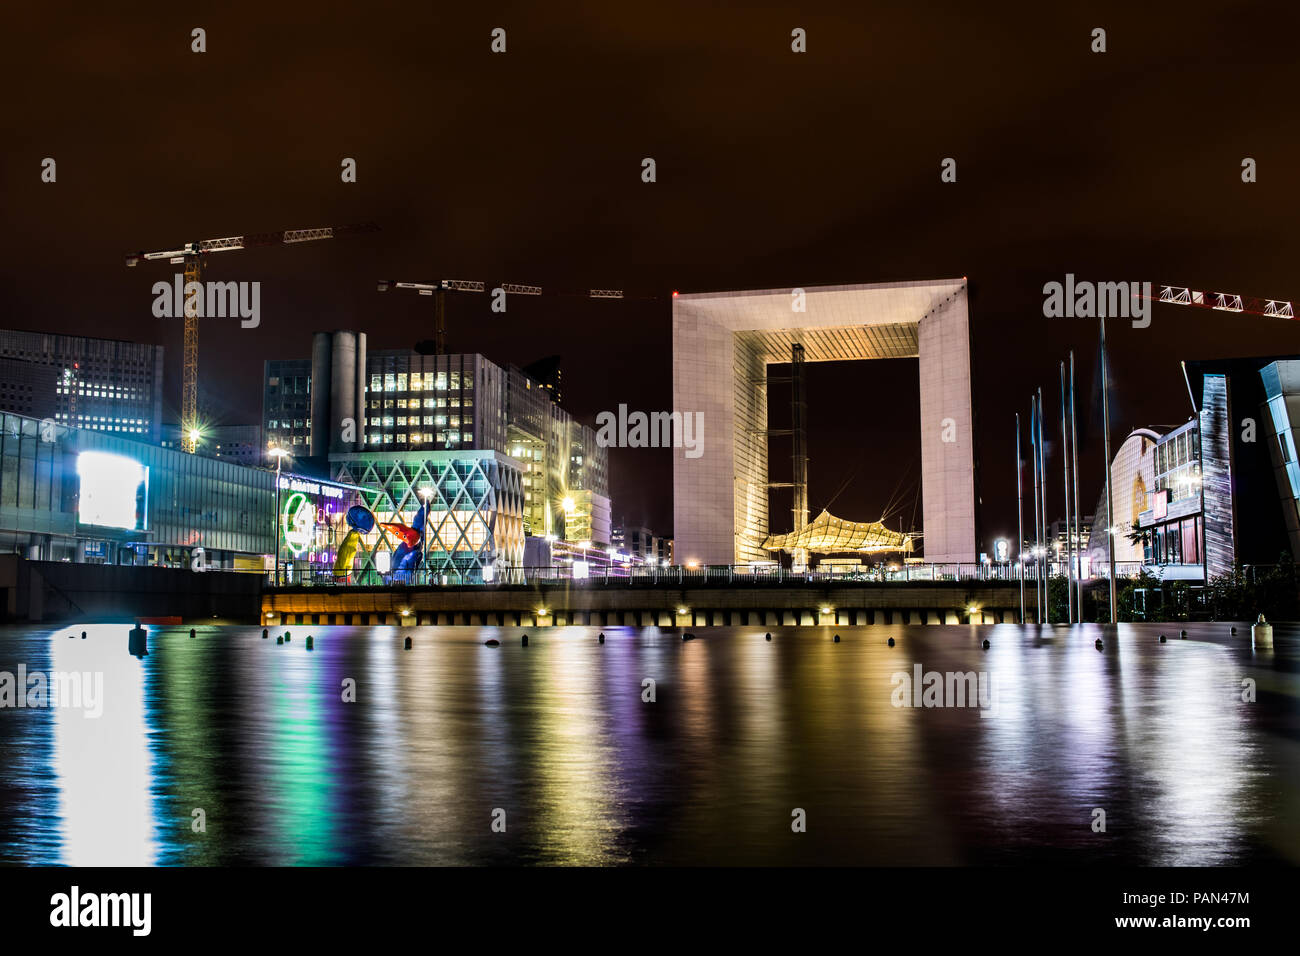 A night photo of la grande arche and the surrounding buildings in la defense the financial district in paris. - Stock Image